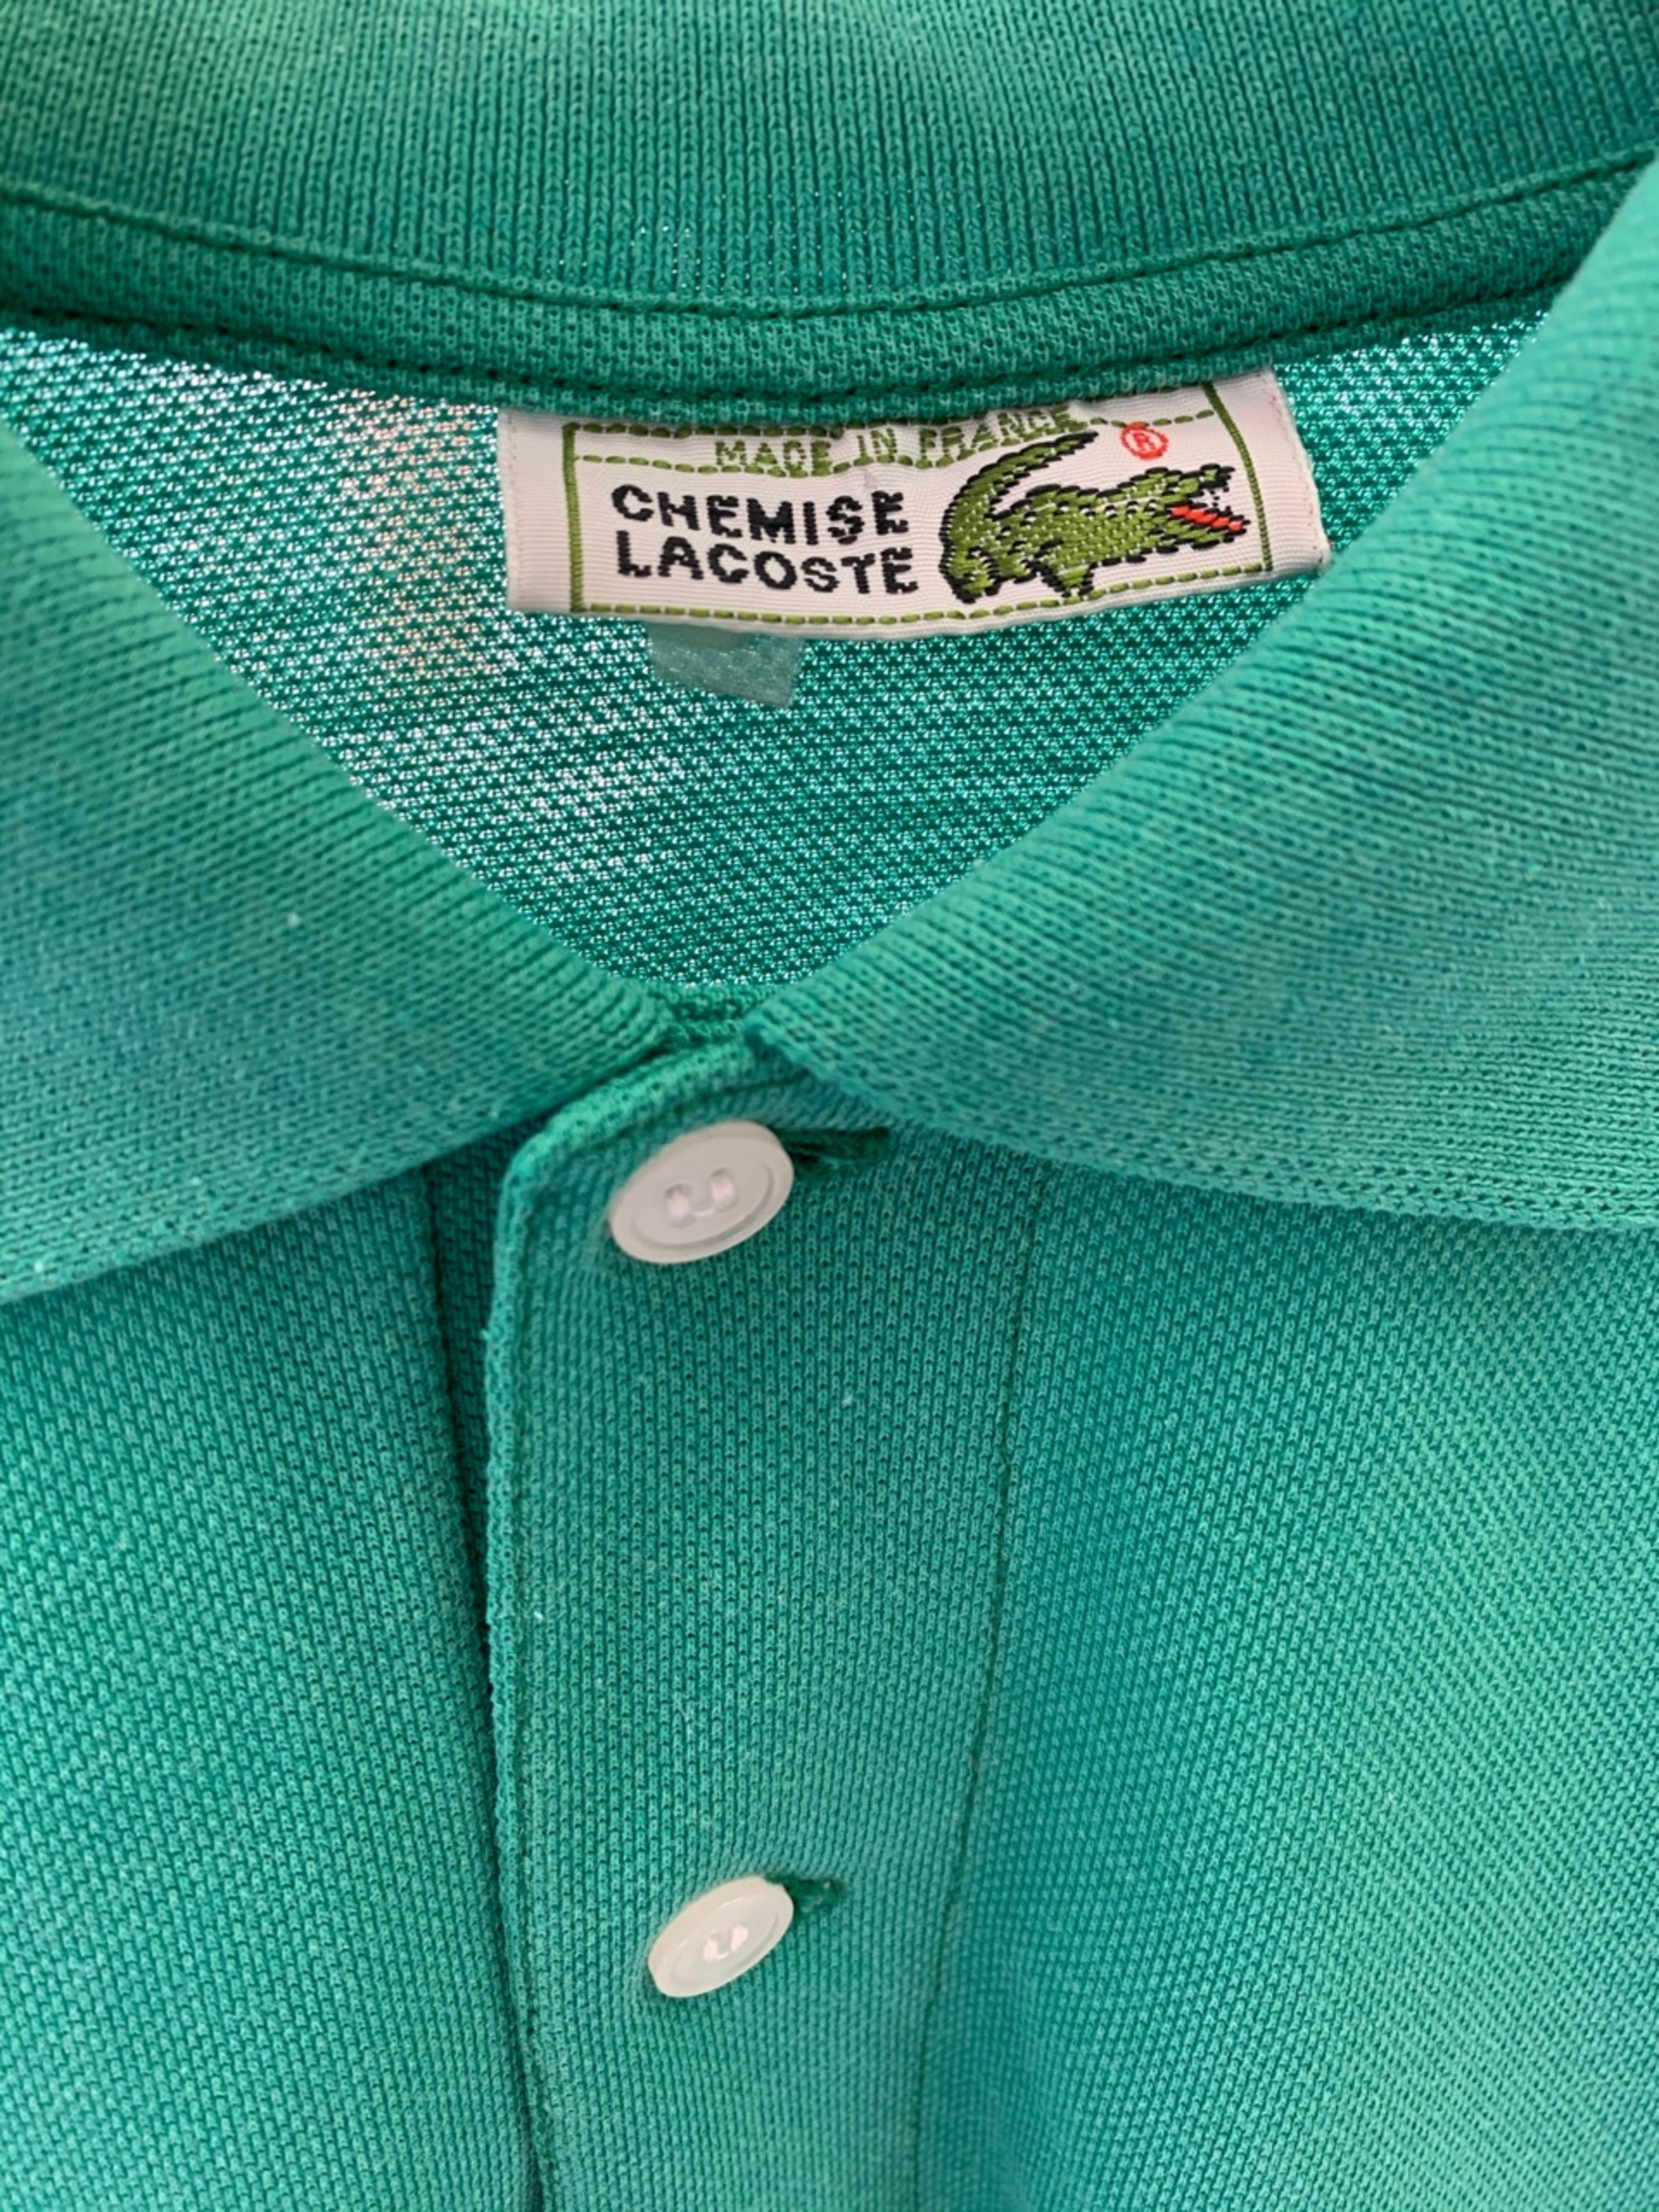 French Lacoste polo shirt green color made in France